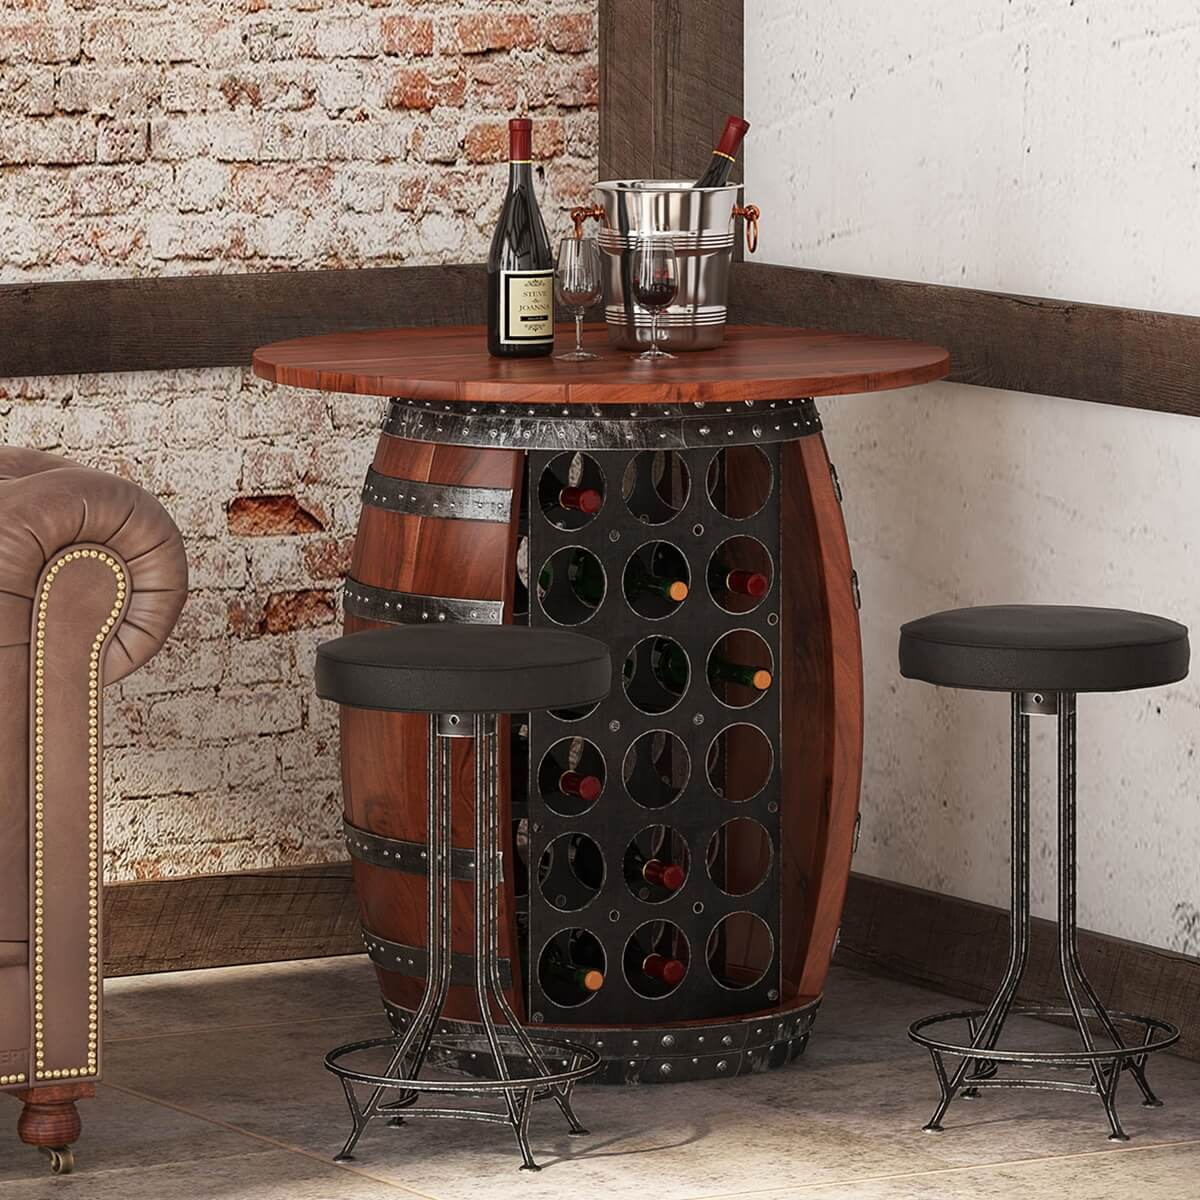 Jungfrau Industrial Solid Wood and Iron Round Barrel Base Bar Table